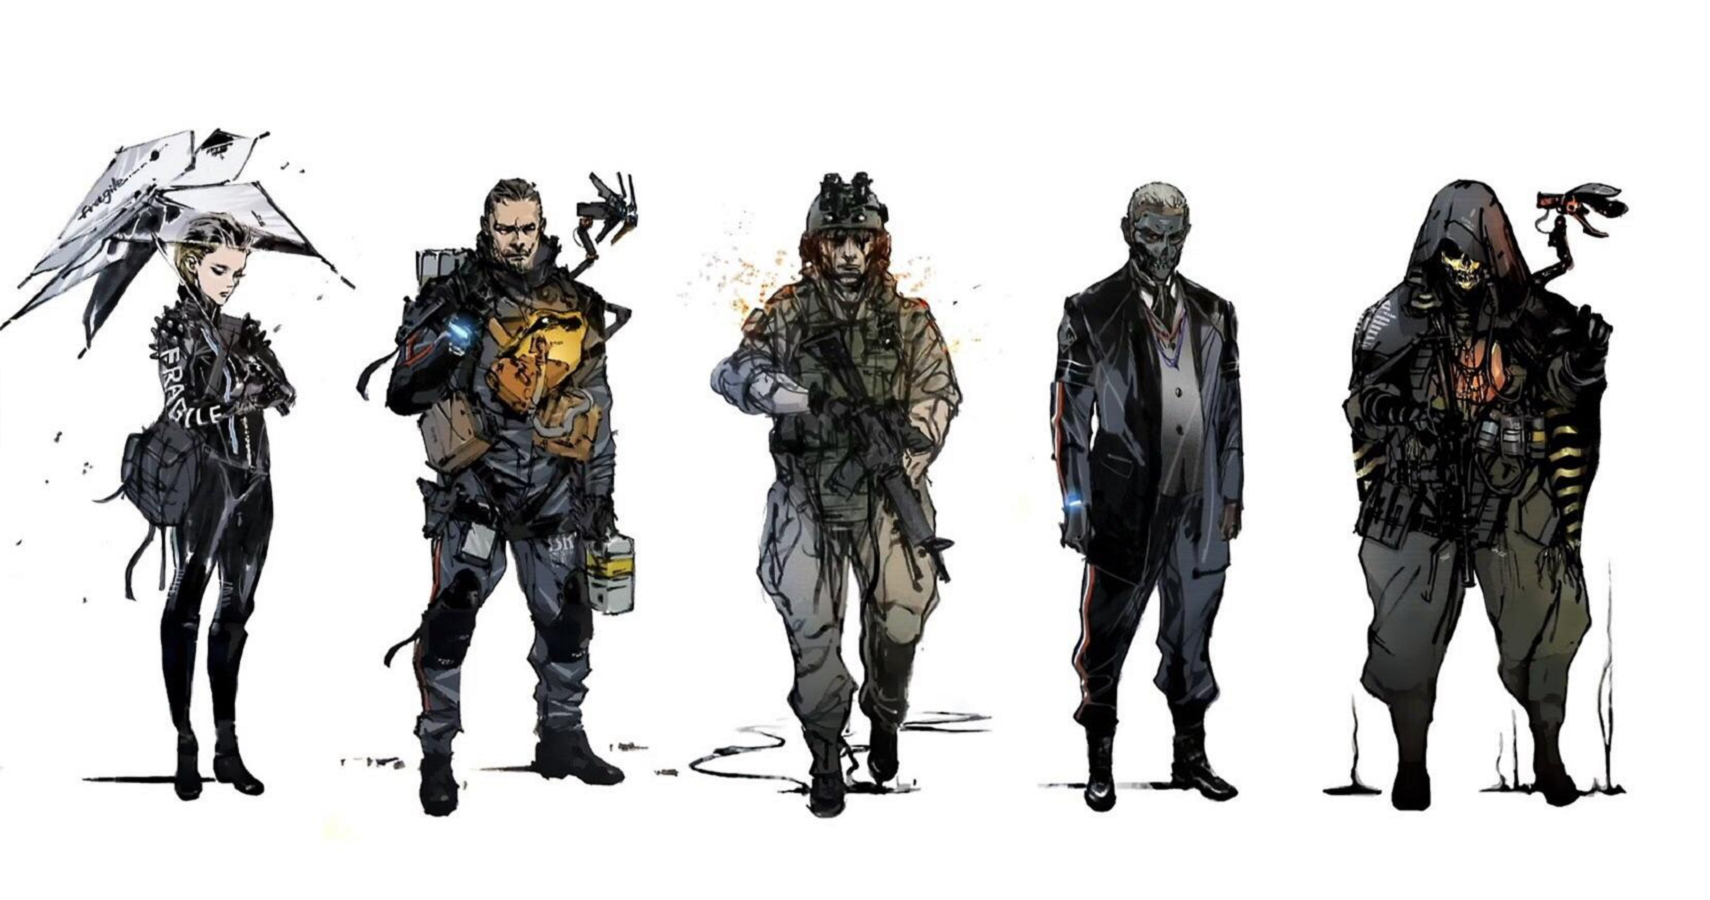 Death Stranding Art Book Shows Concepts For Norman Reedus